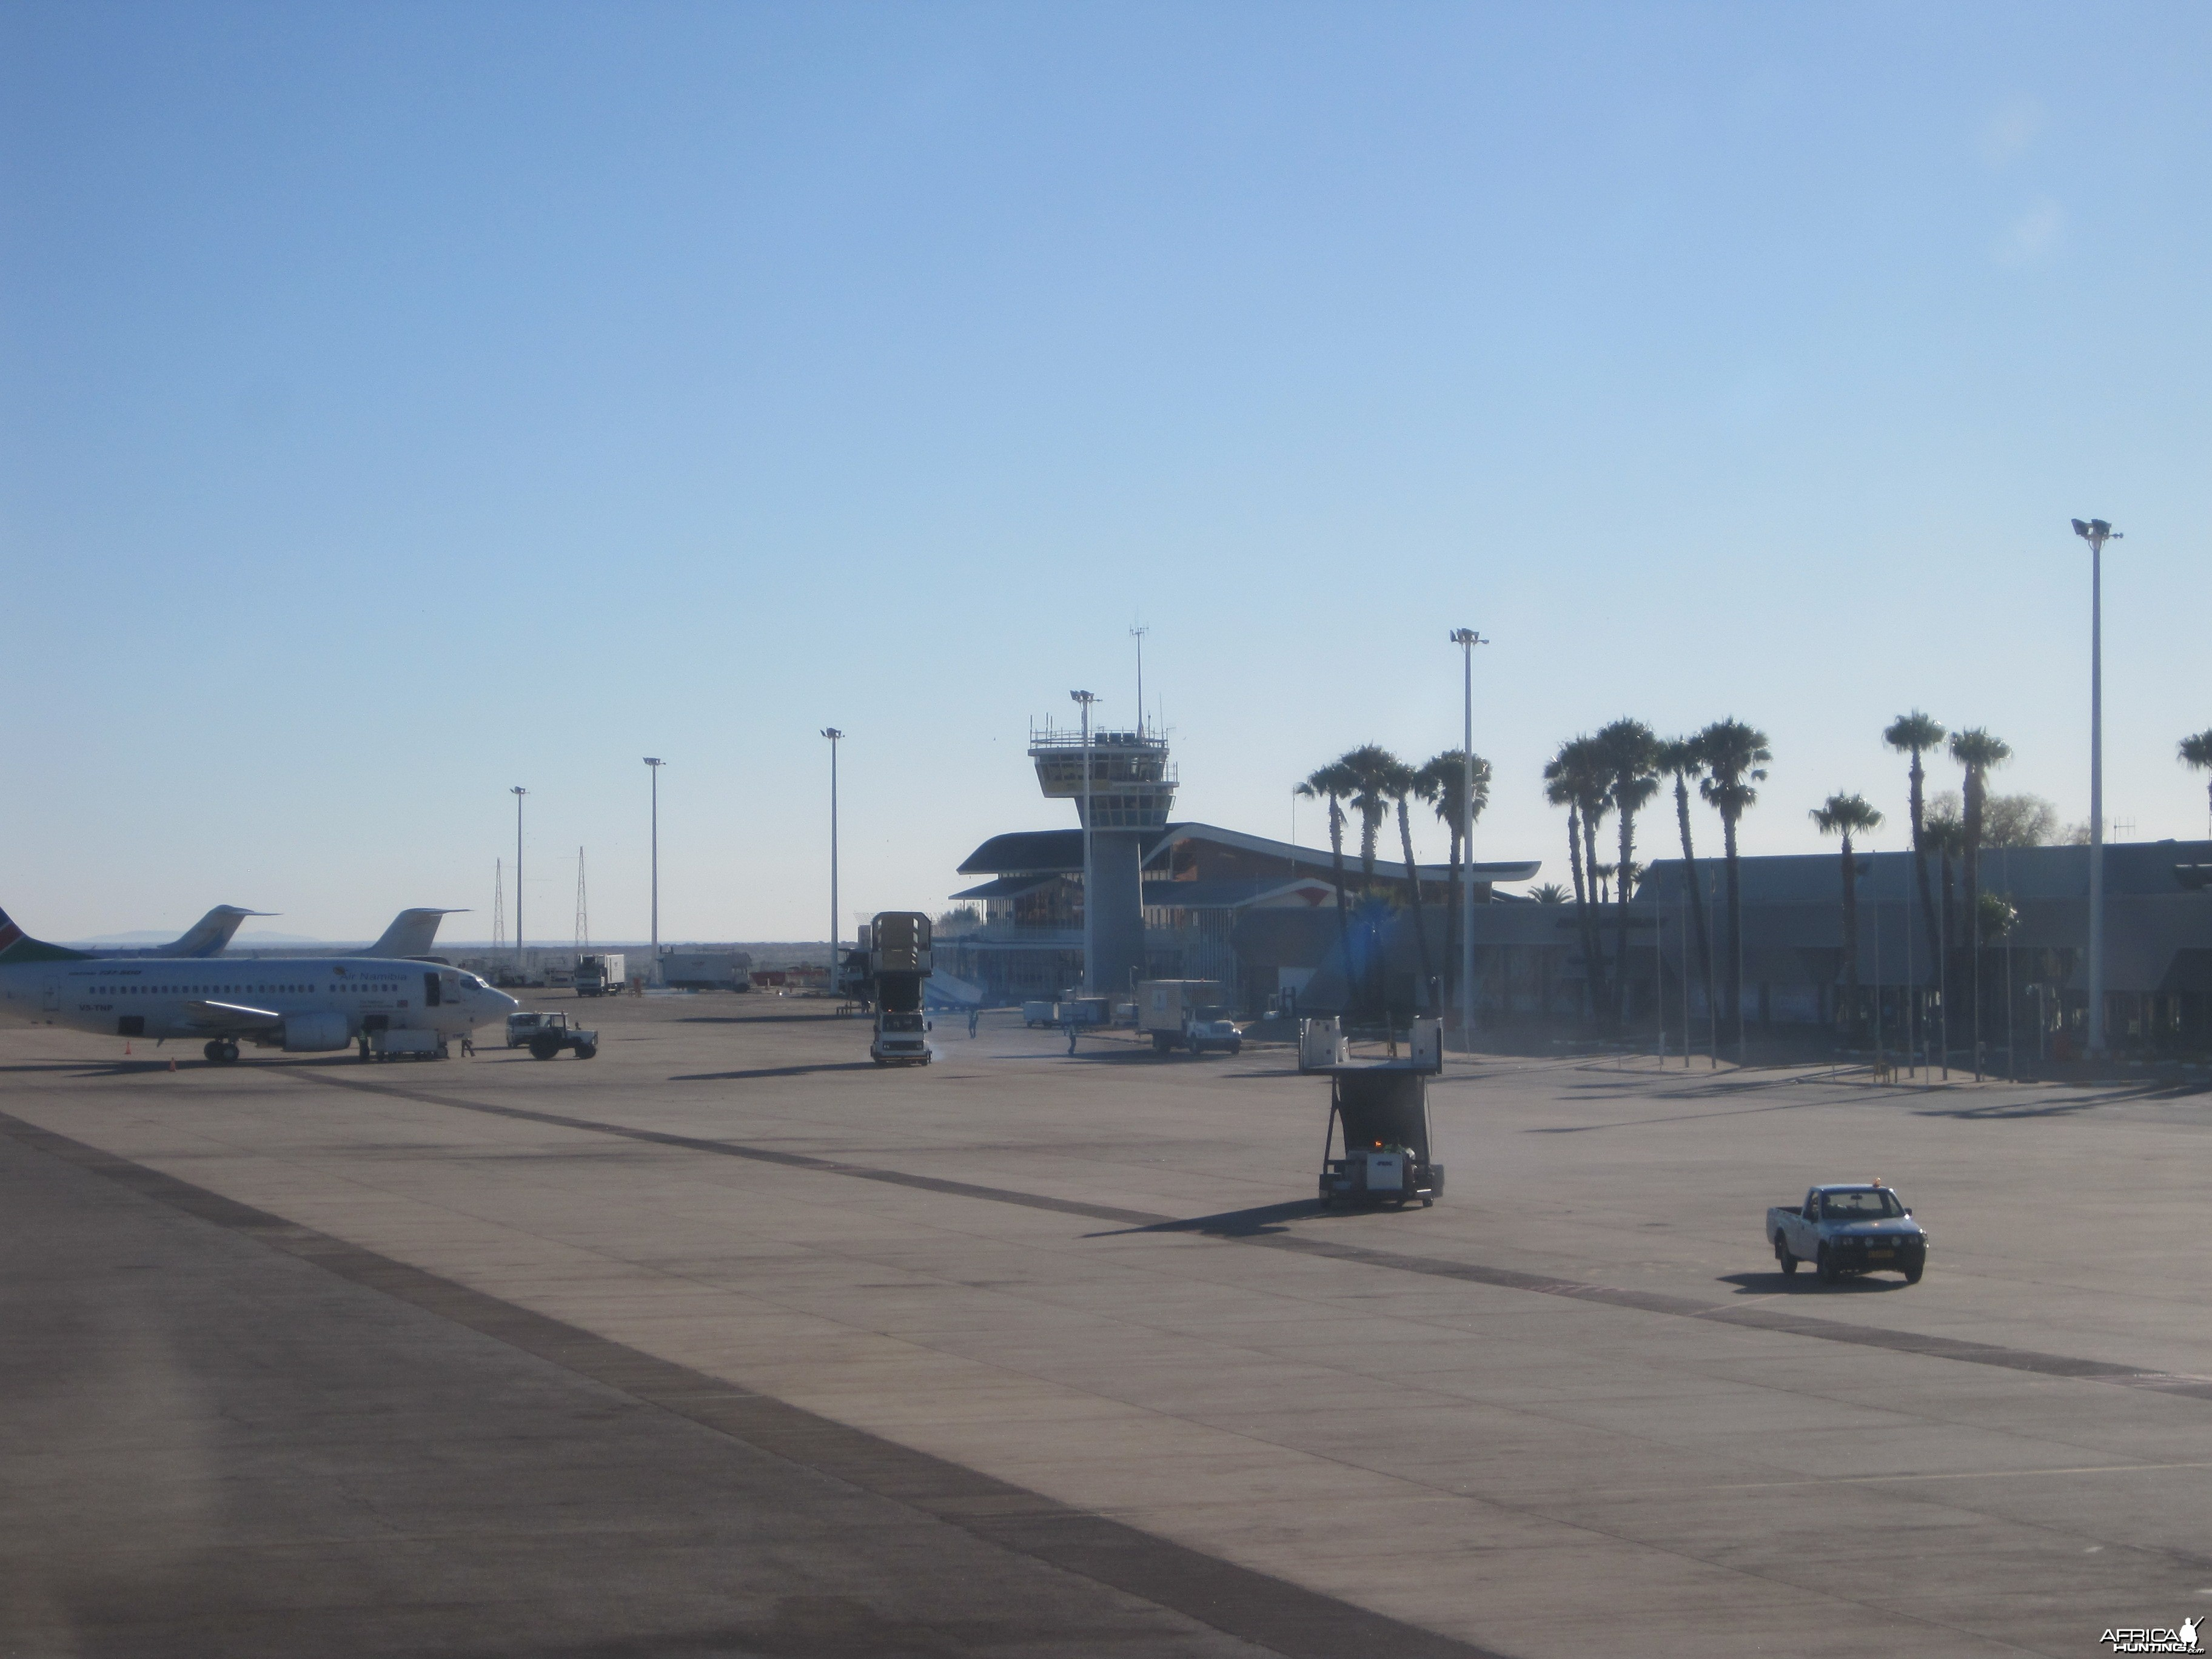 Tarmac arrival at the International Airport in Windhoek, Namibia